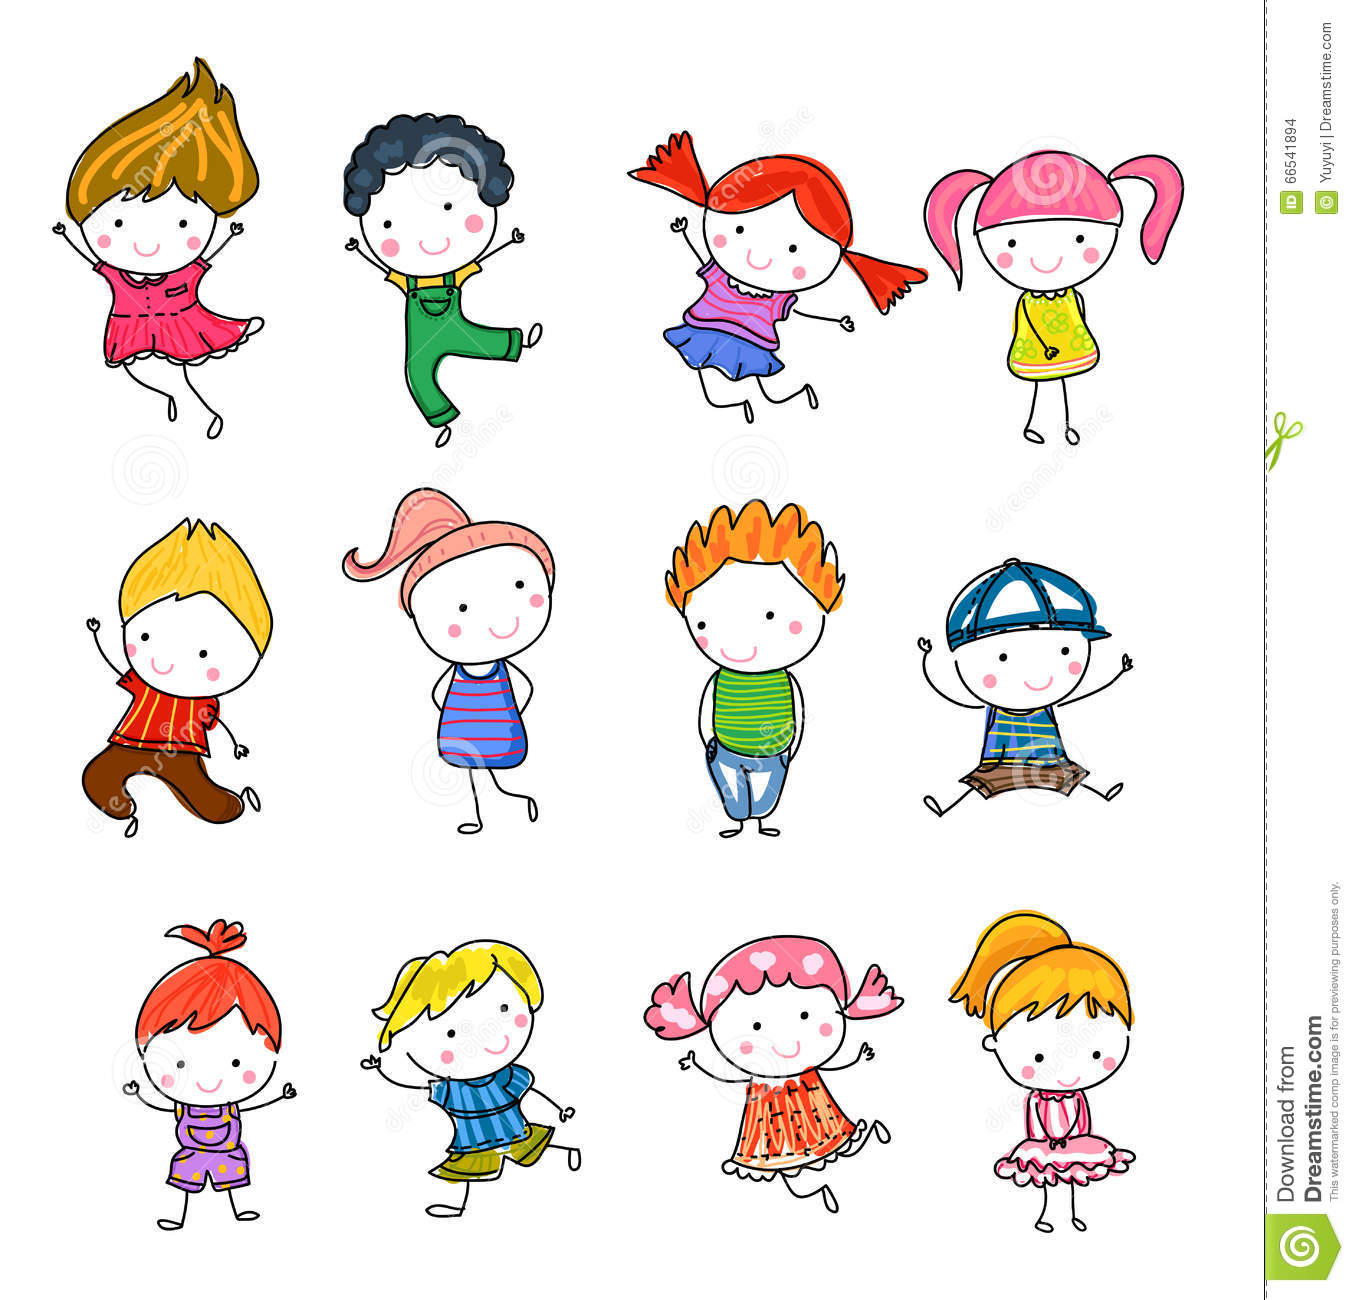 group of kidsdrawing sketch stock images - Drawing Sketch For Kids